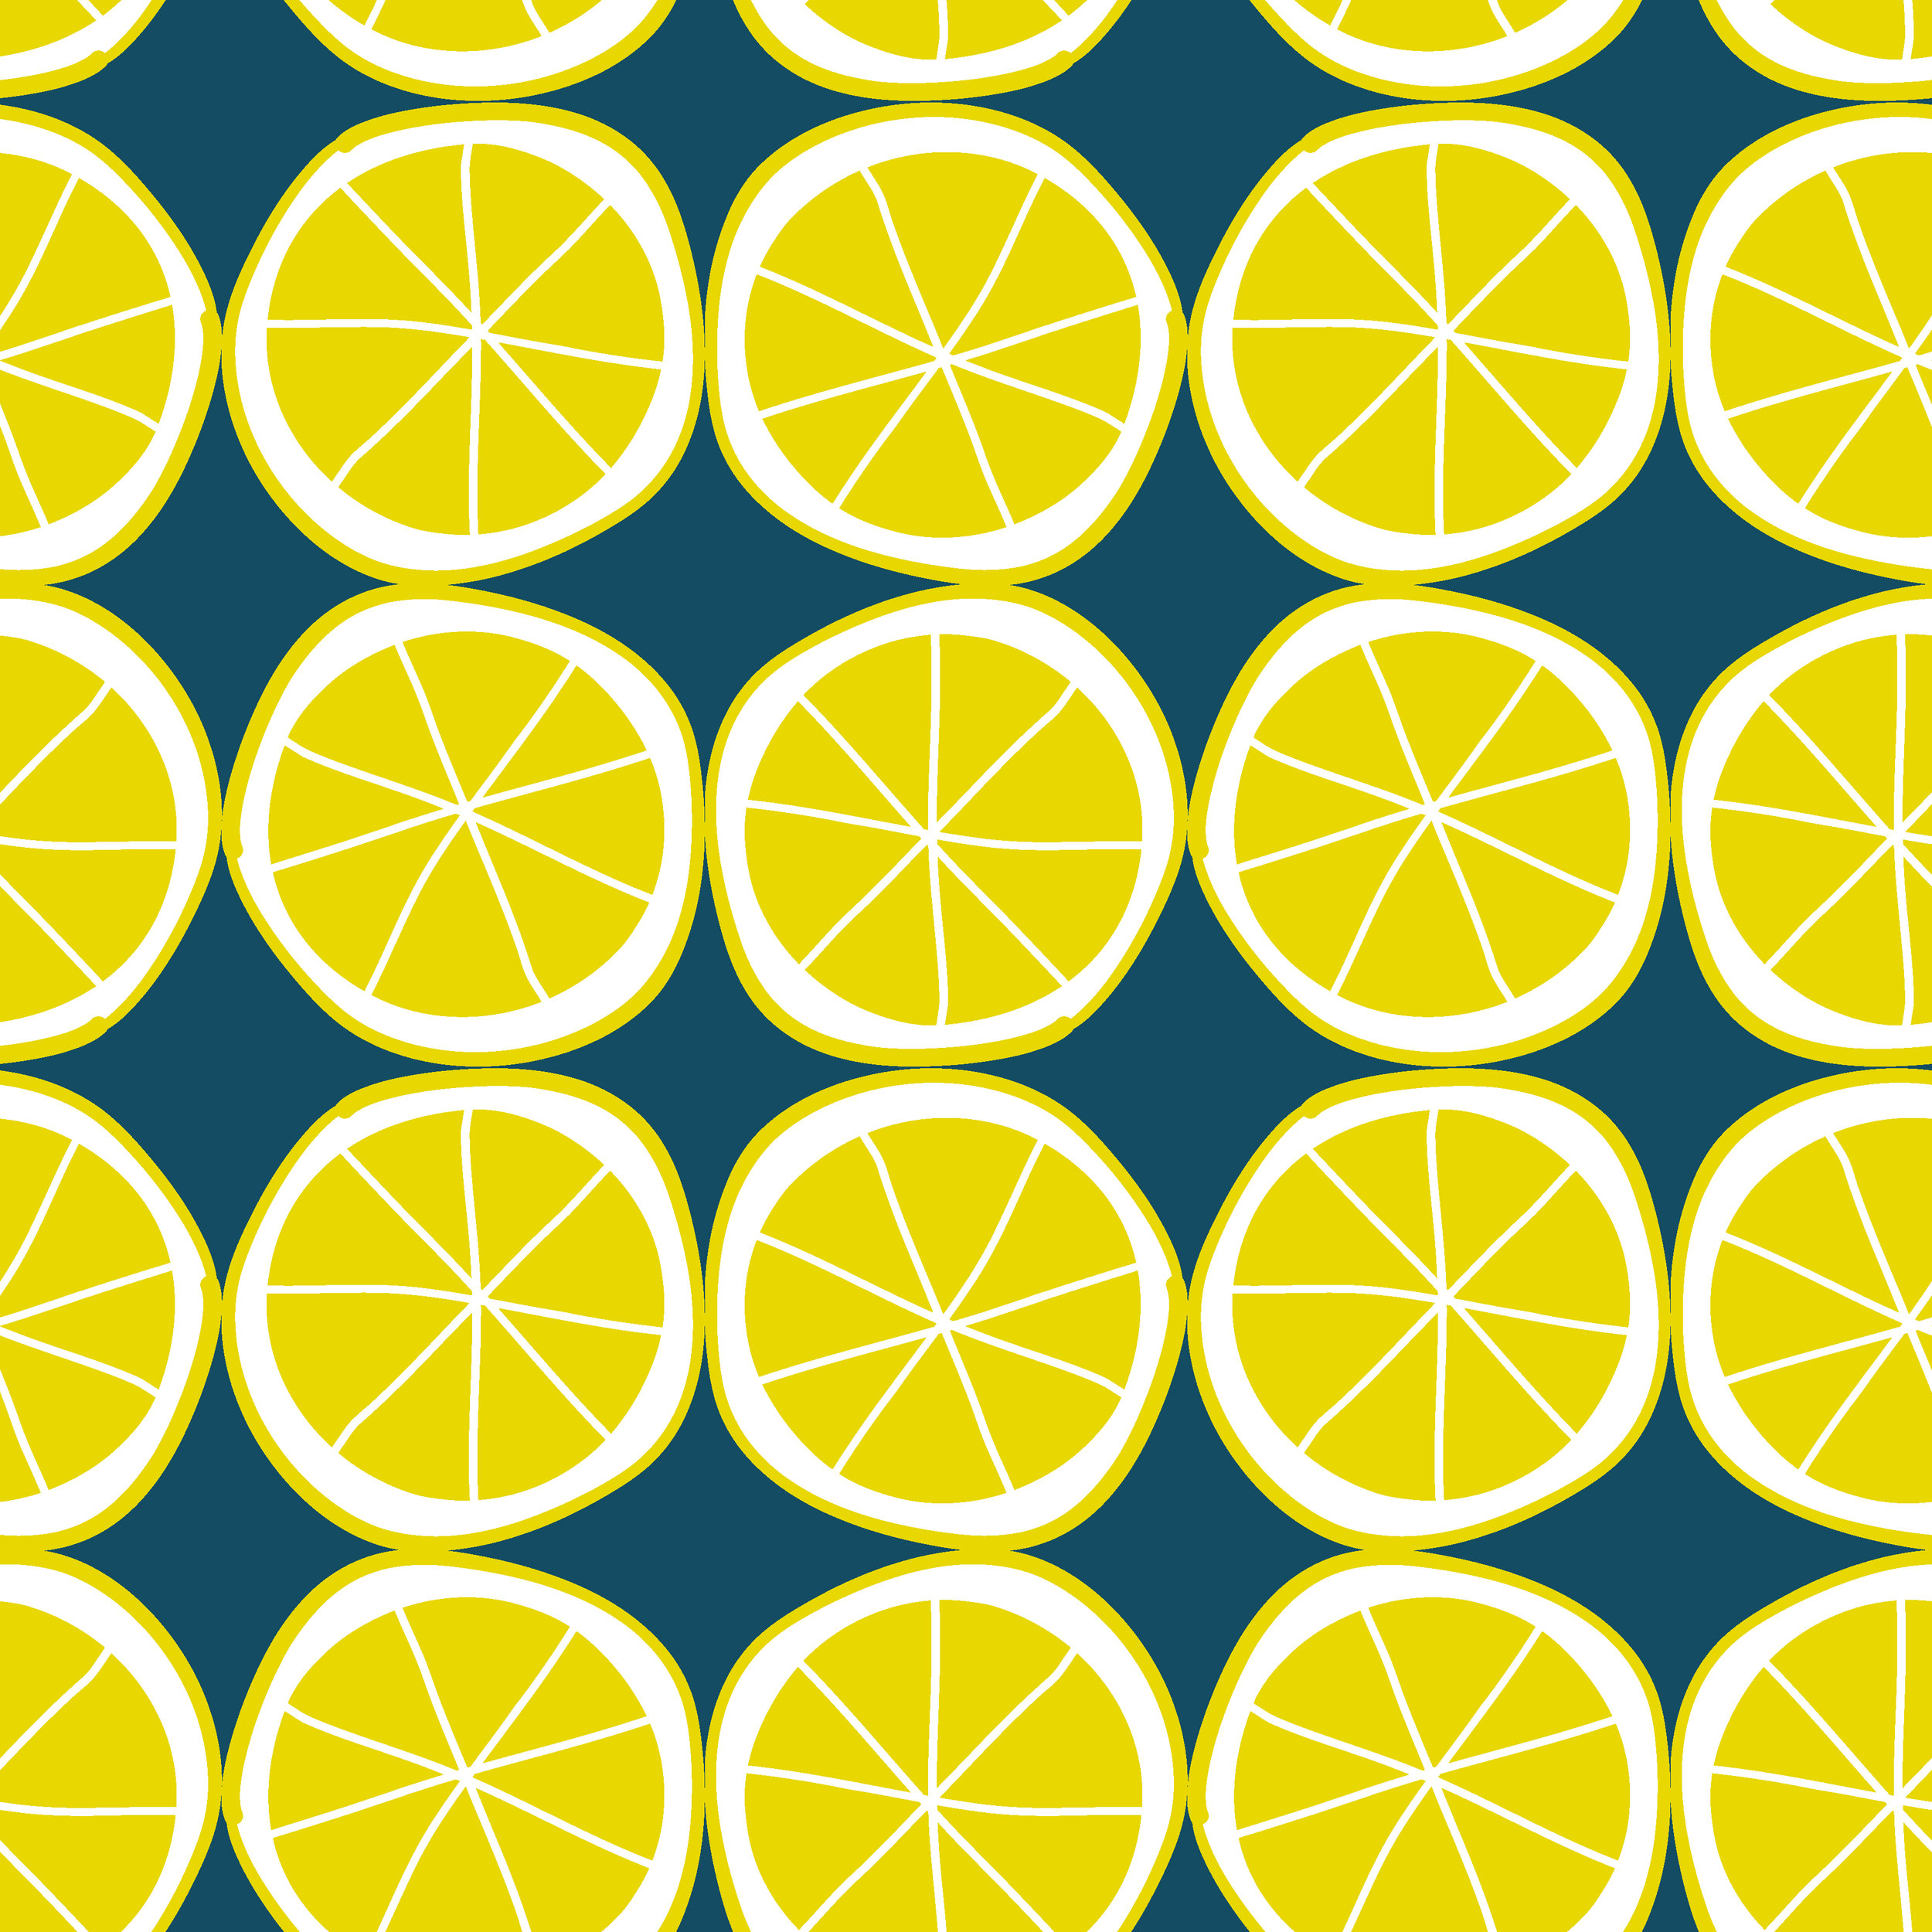 SUMMERFRUIT_Patterns-01.jpg